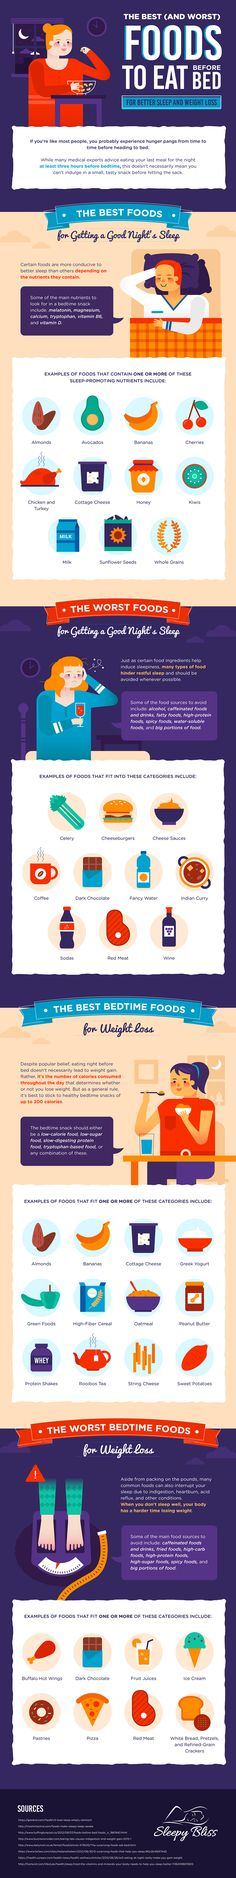 The Best (And Worst) Foods to Eat Before Bed